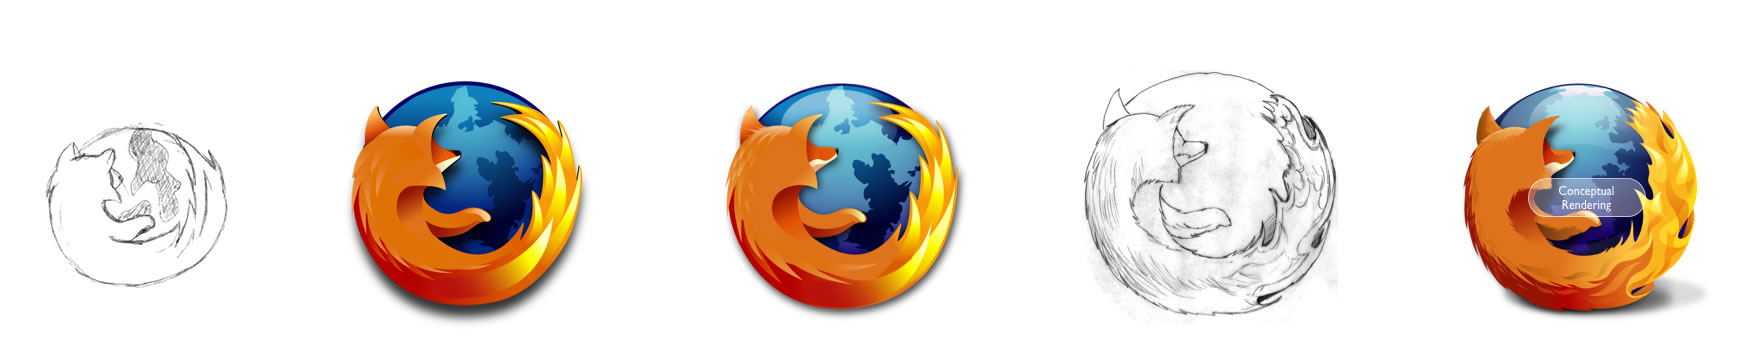 firefox evolution